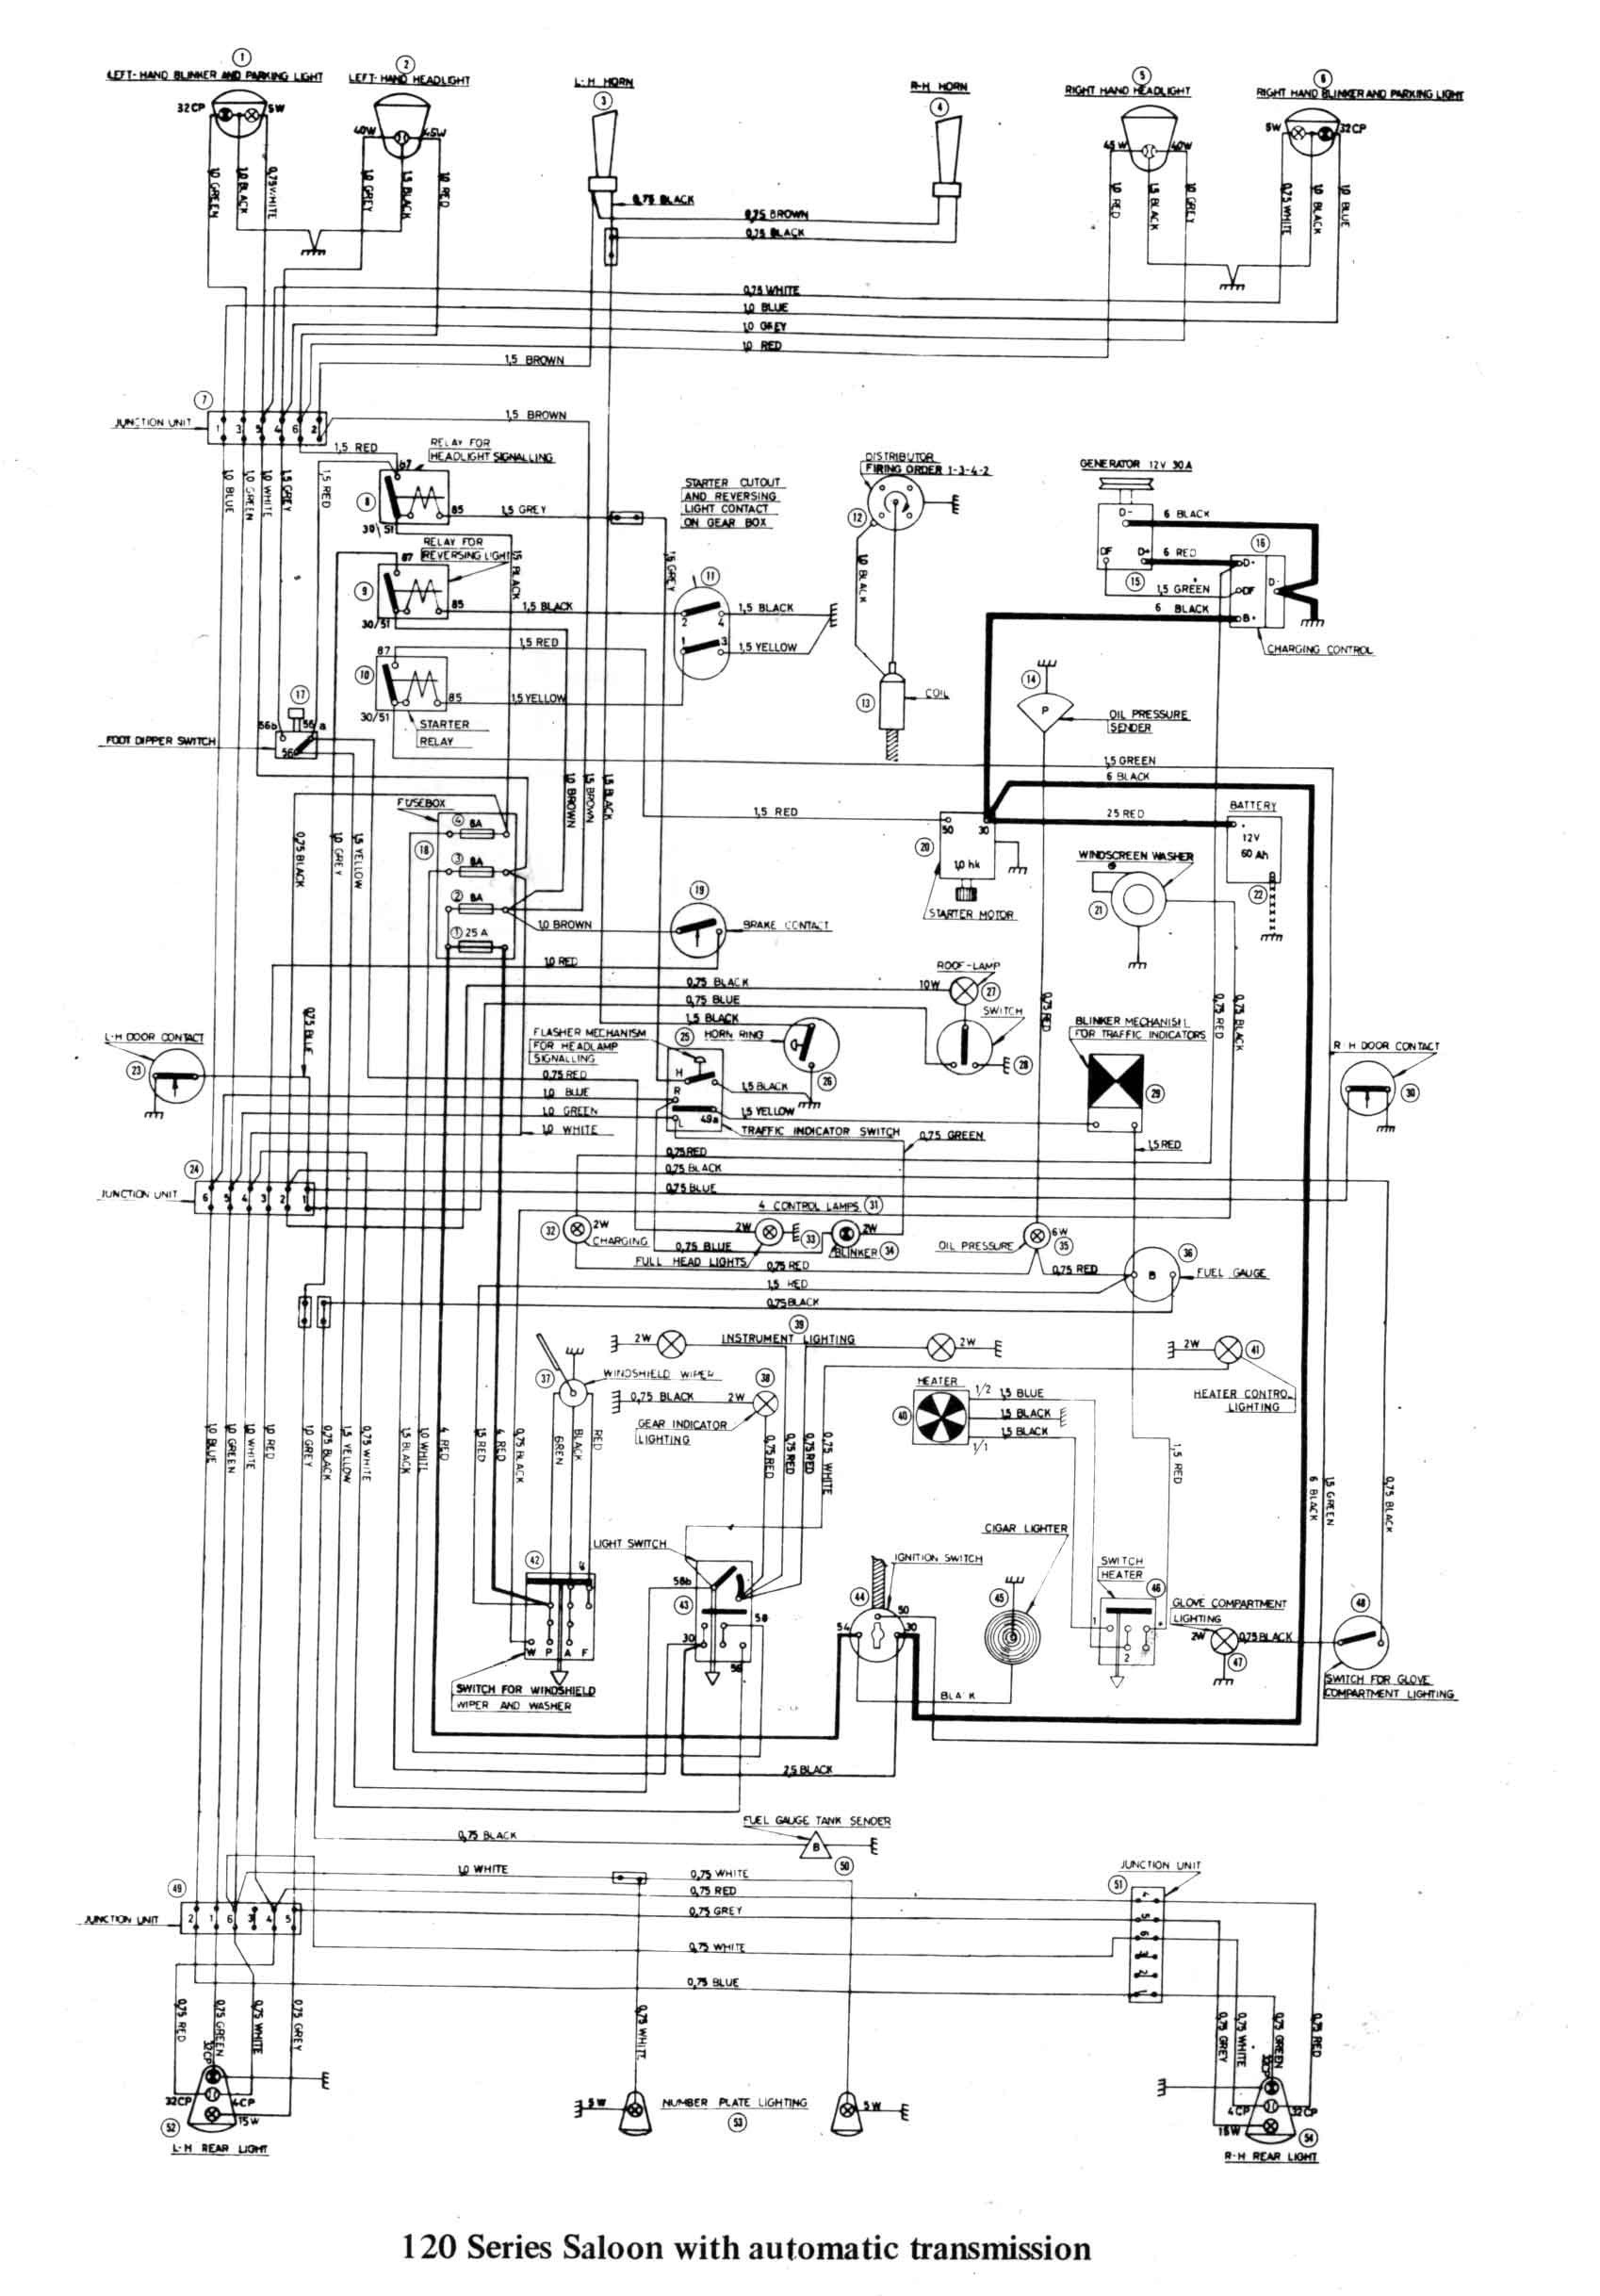 Wiring Diagram For Phone Line Save Electrical Wire Diagram Unique Pretty Ge Dryer Wiring Diagram Line